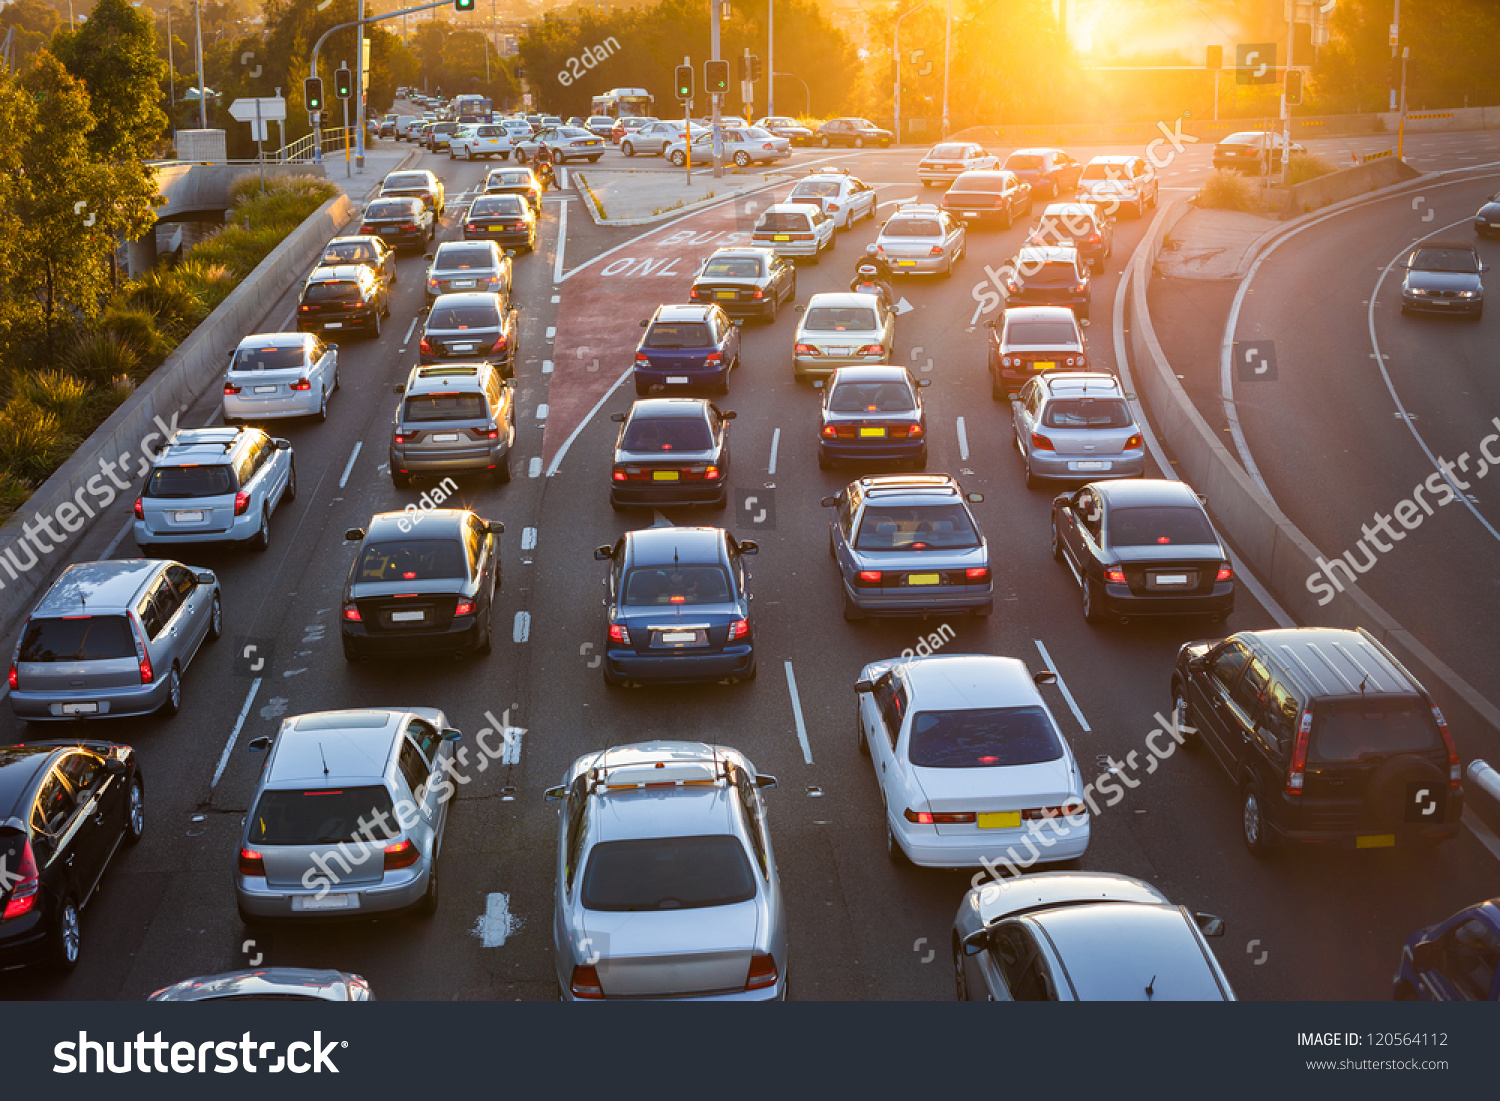 Cars stuck in traffic at an intersection #120564112